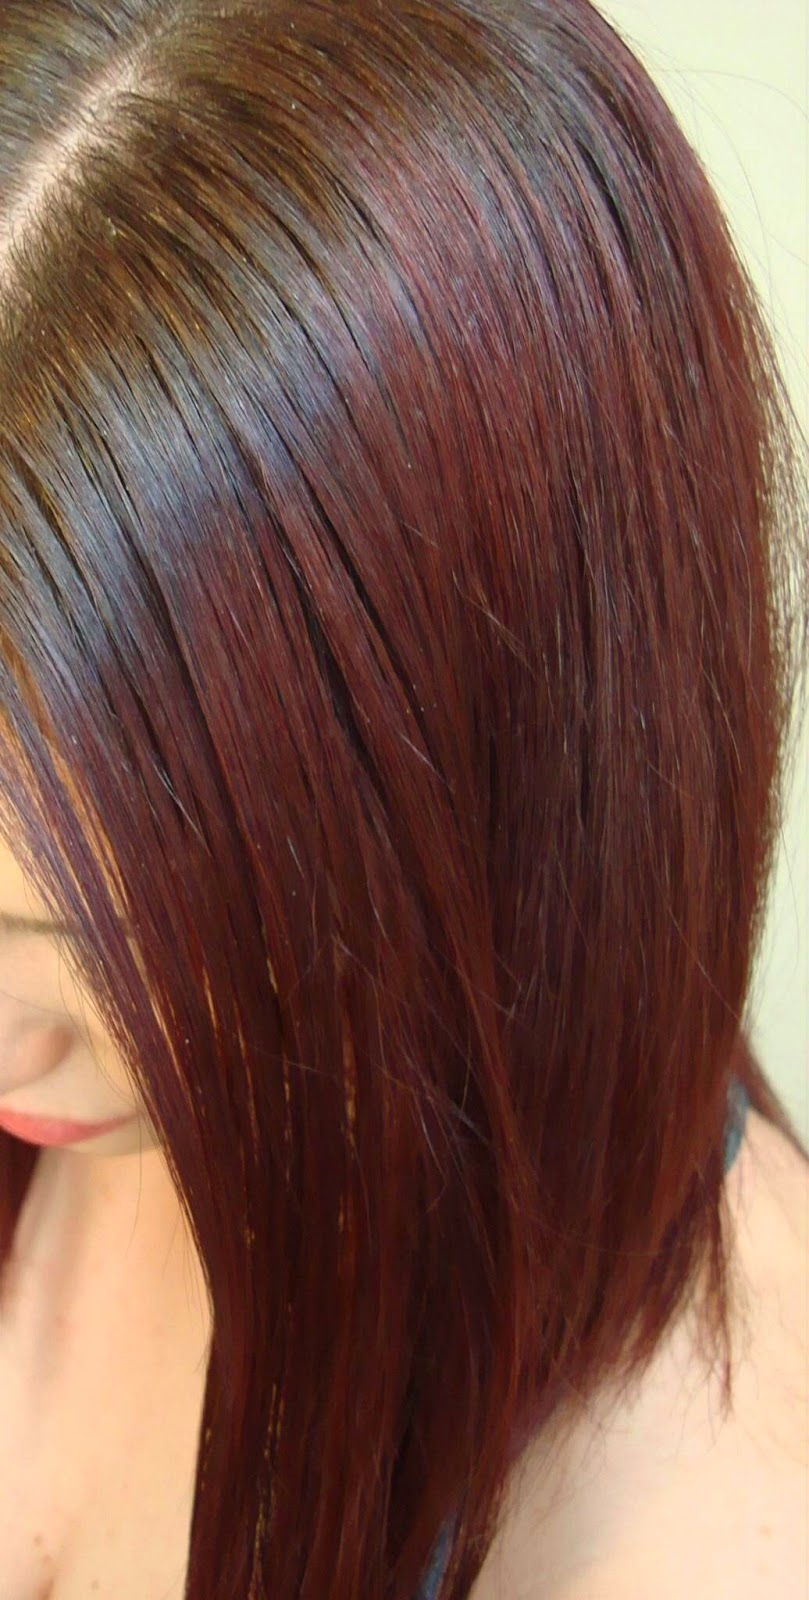 At Home Hair Color Sallys